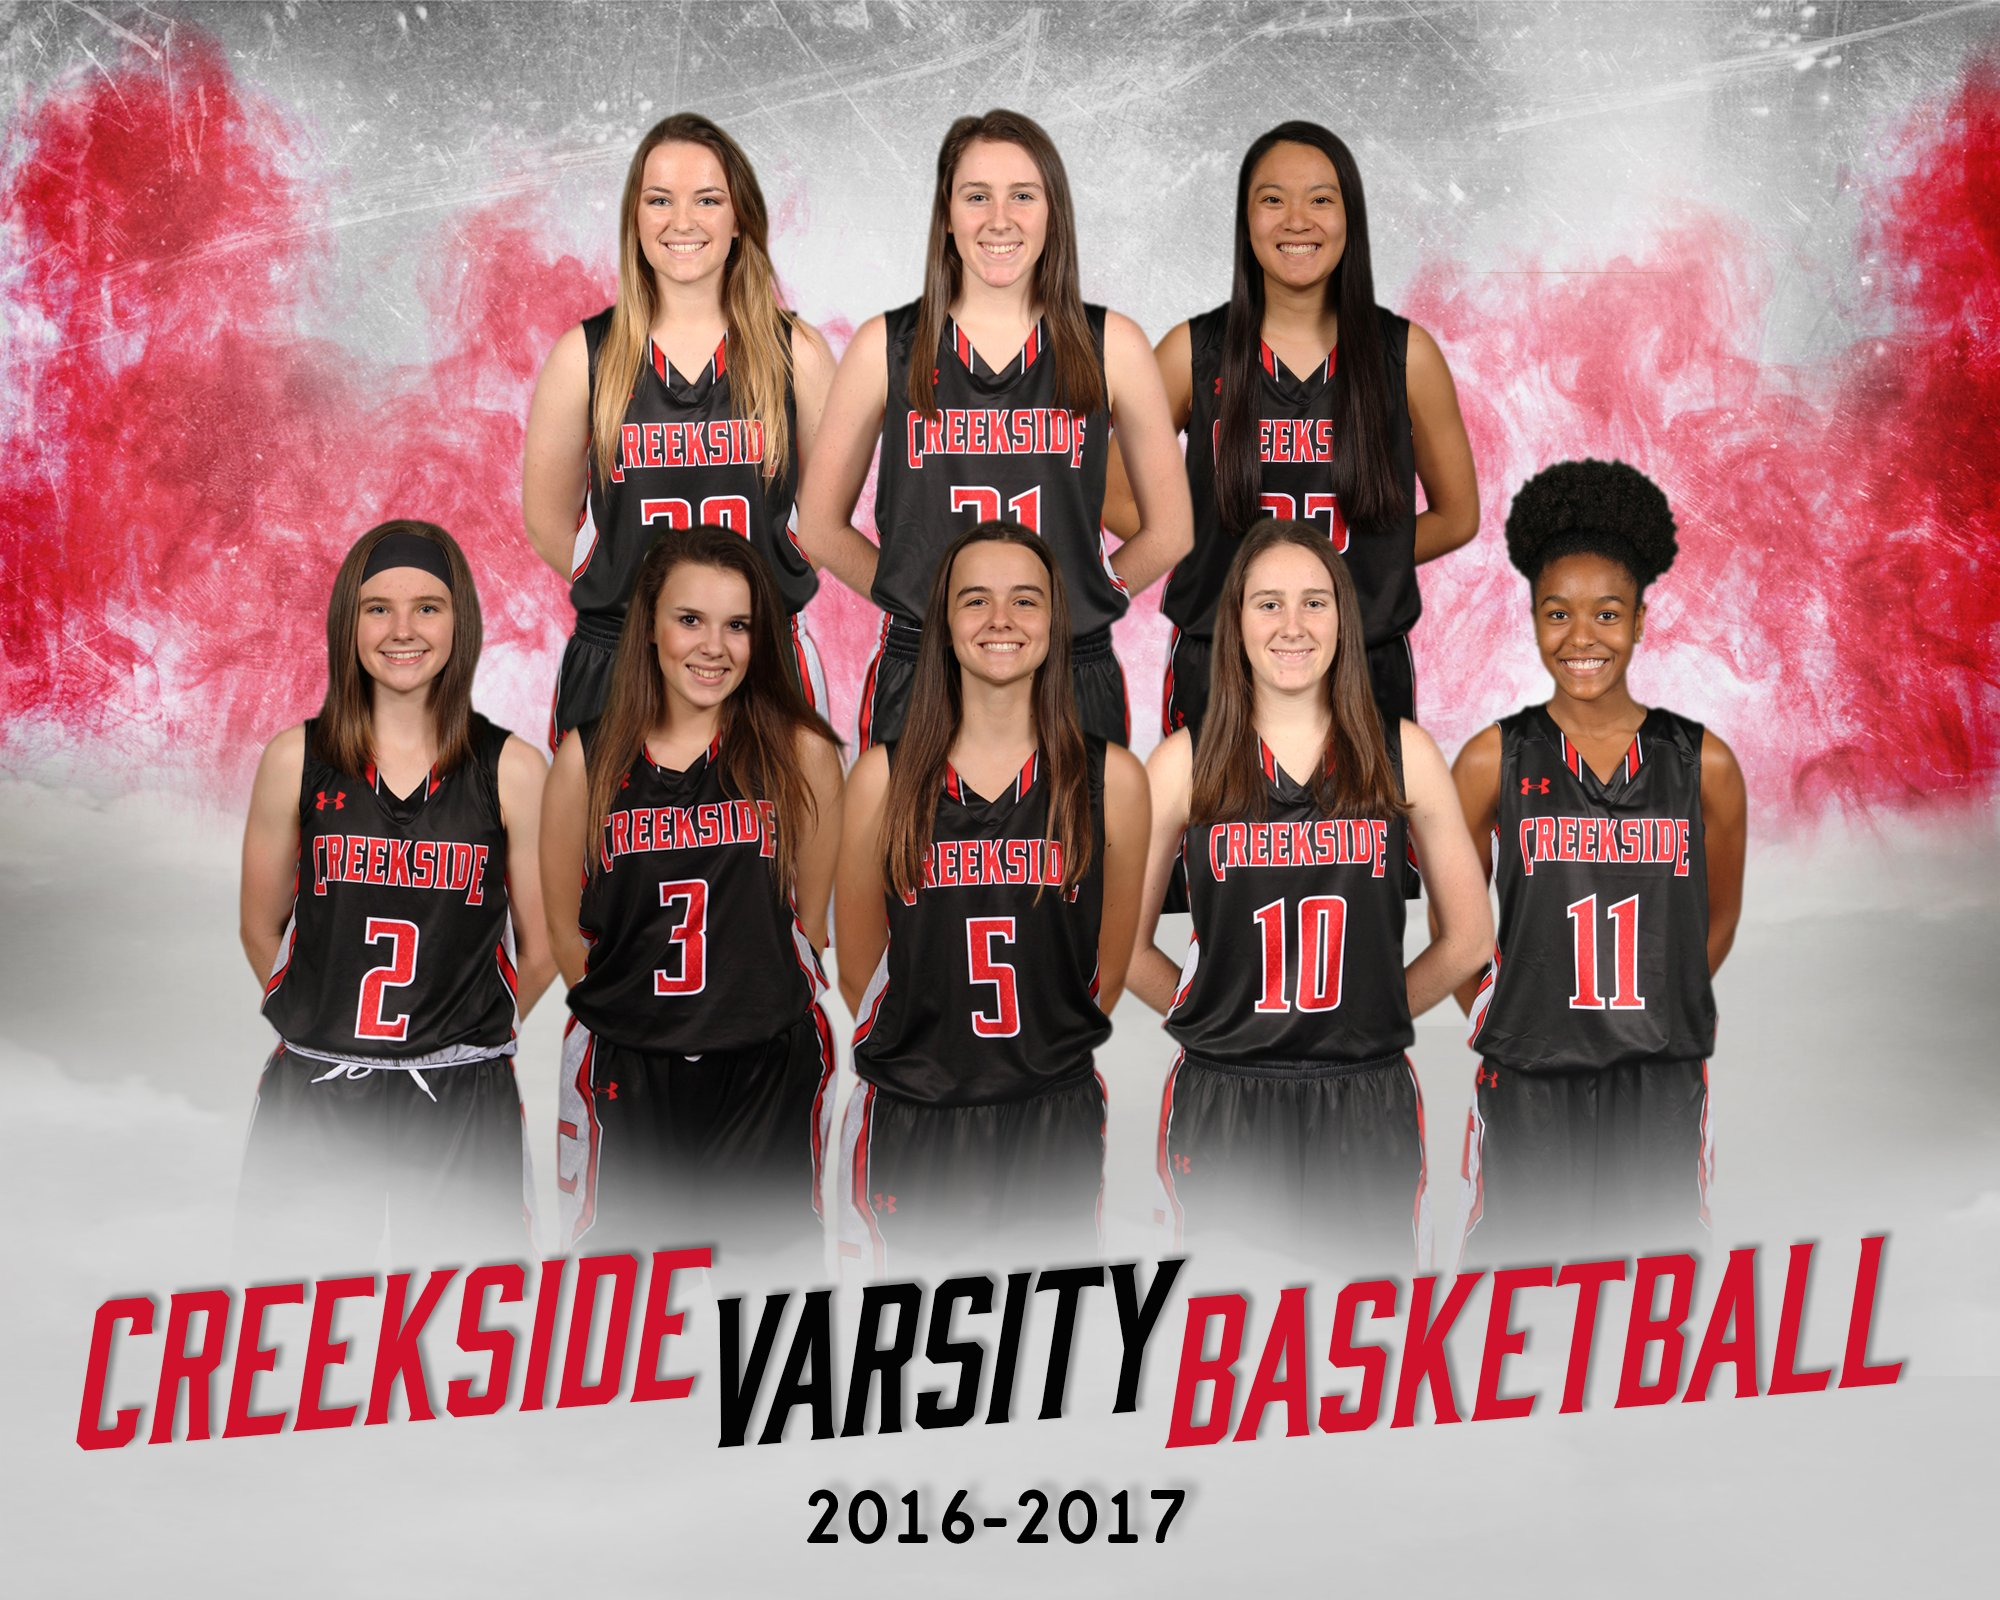 2016-17 Creekside_Basketball_W_V